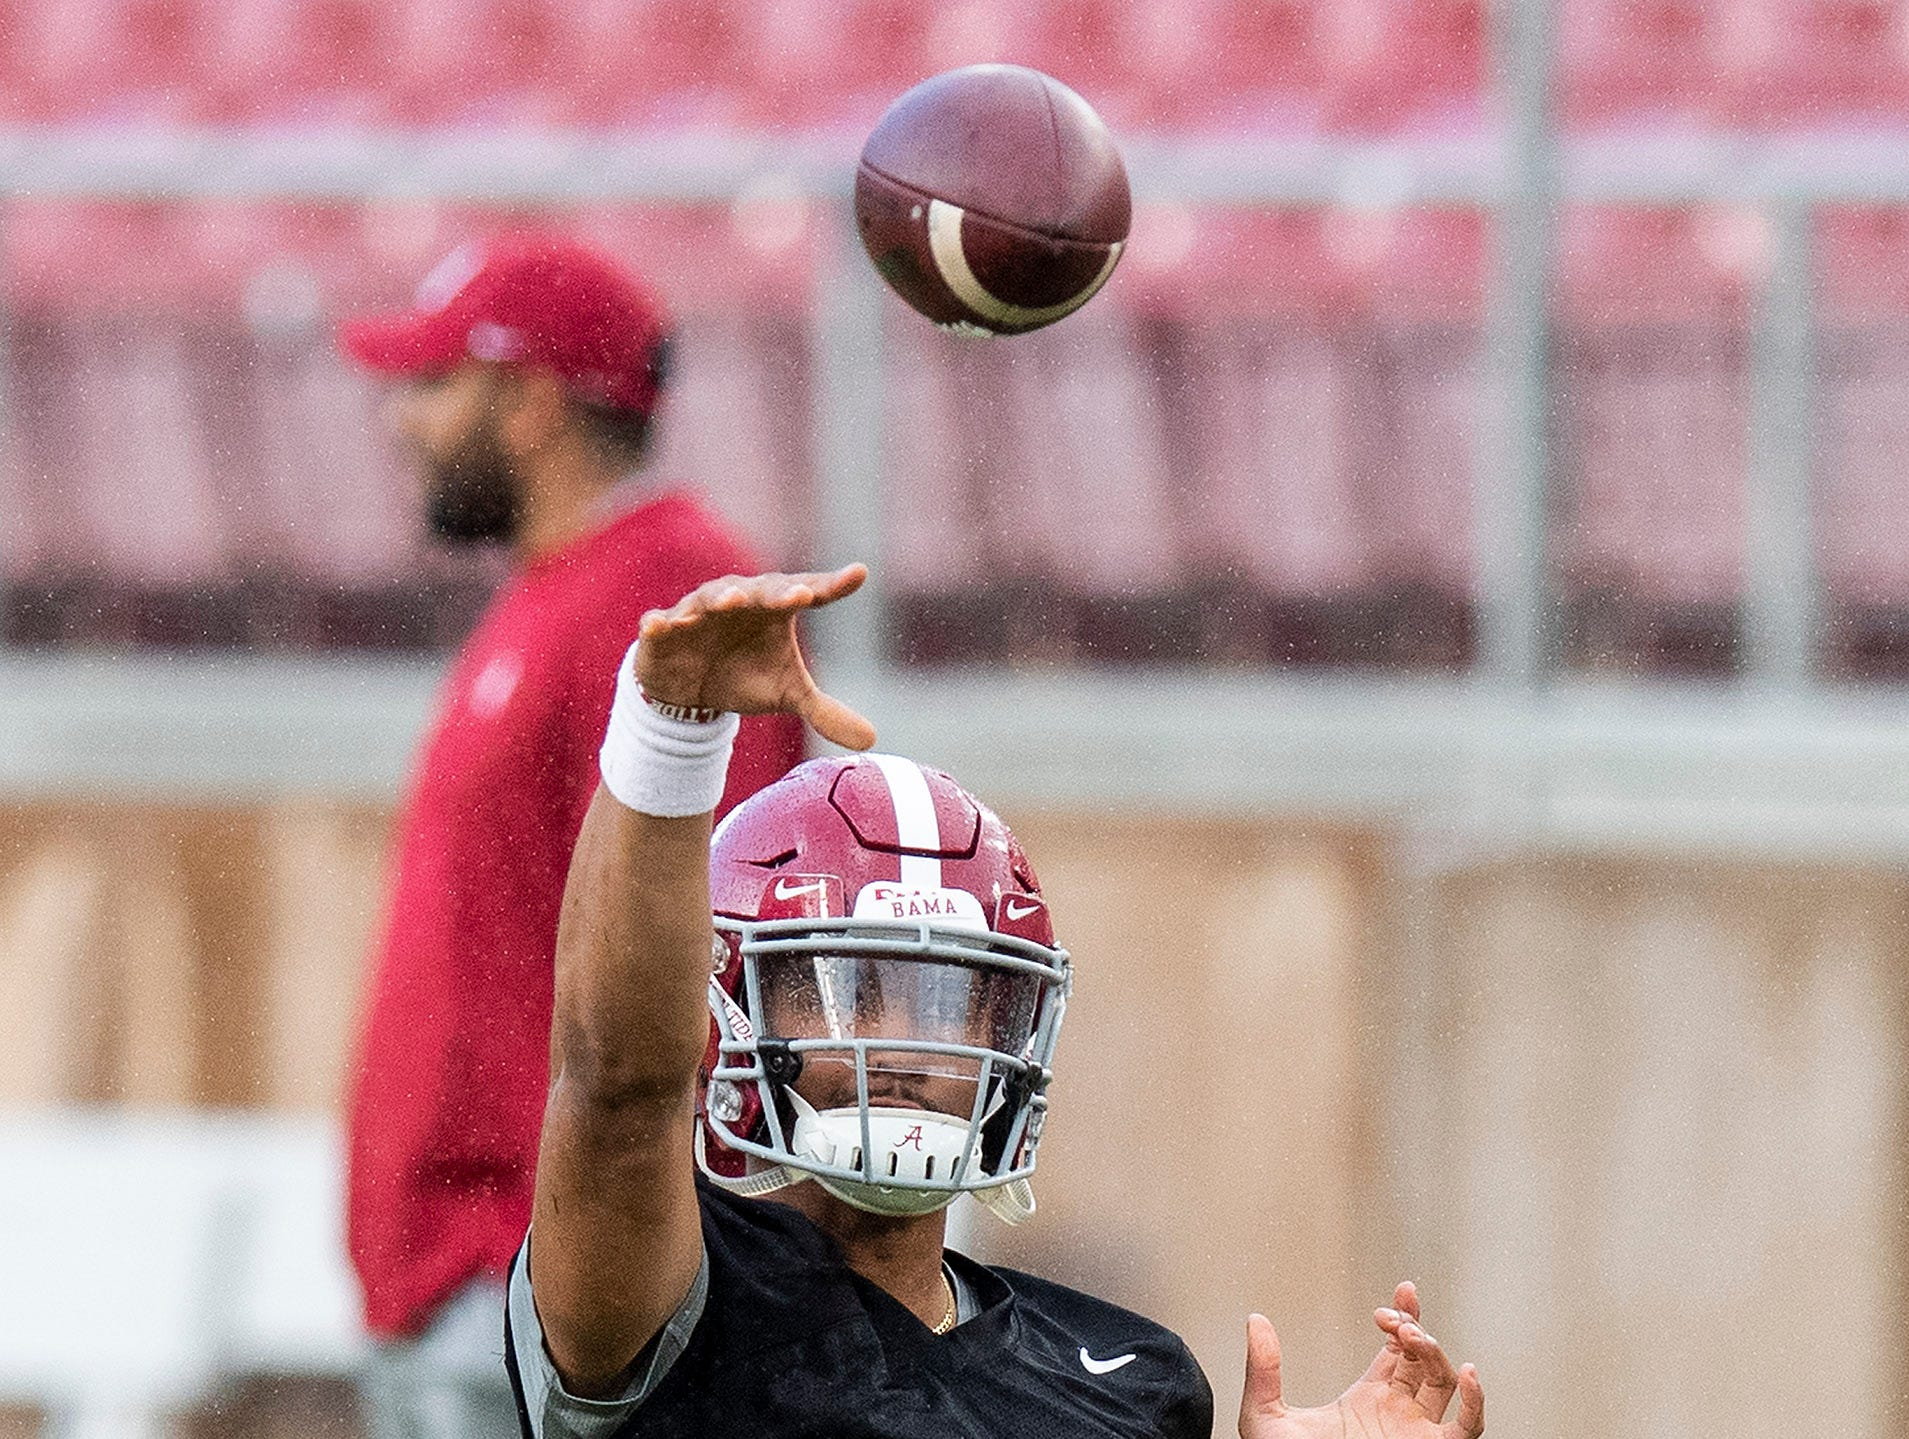 Alabama quarterback Jalen Hurts (2) as Alabama practices on the Stanford campus in Stanford, Ca., on Saturday January 5, 2019.